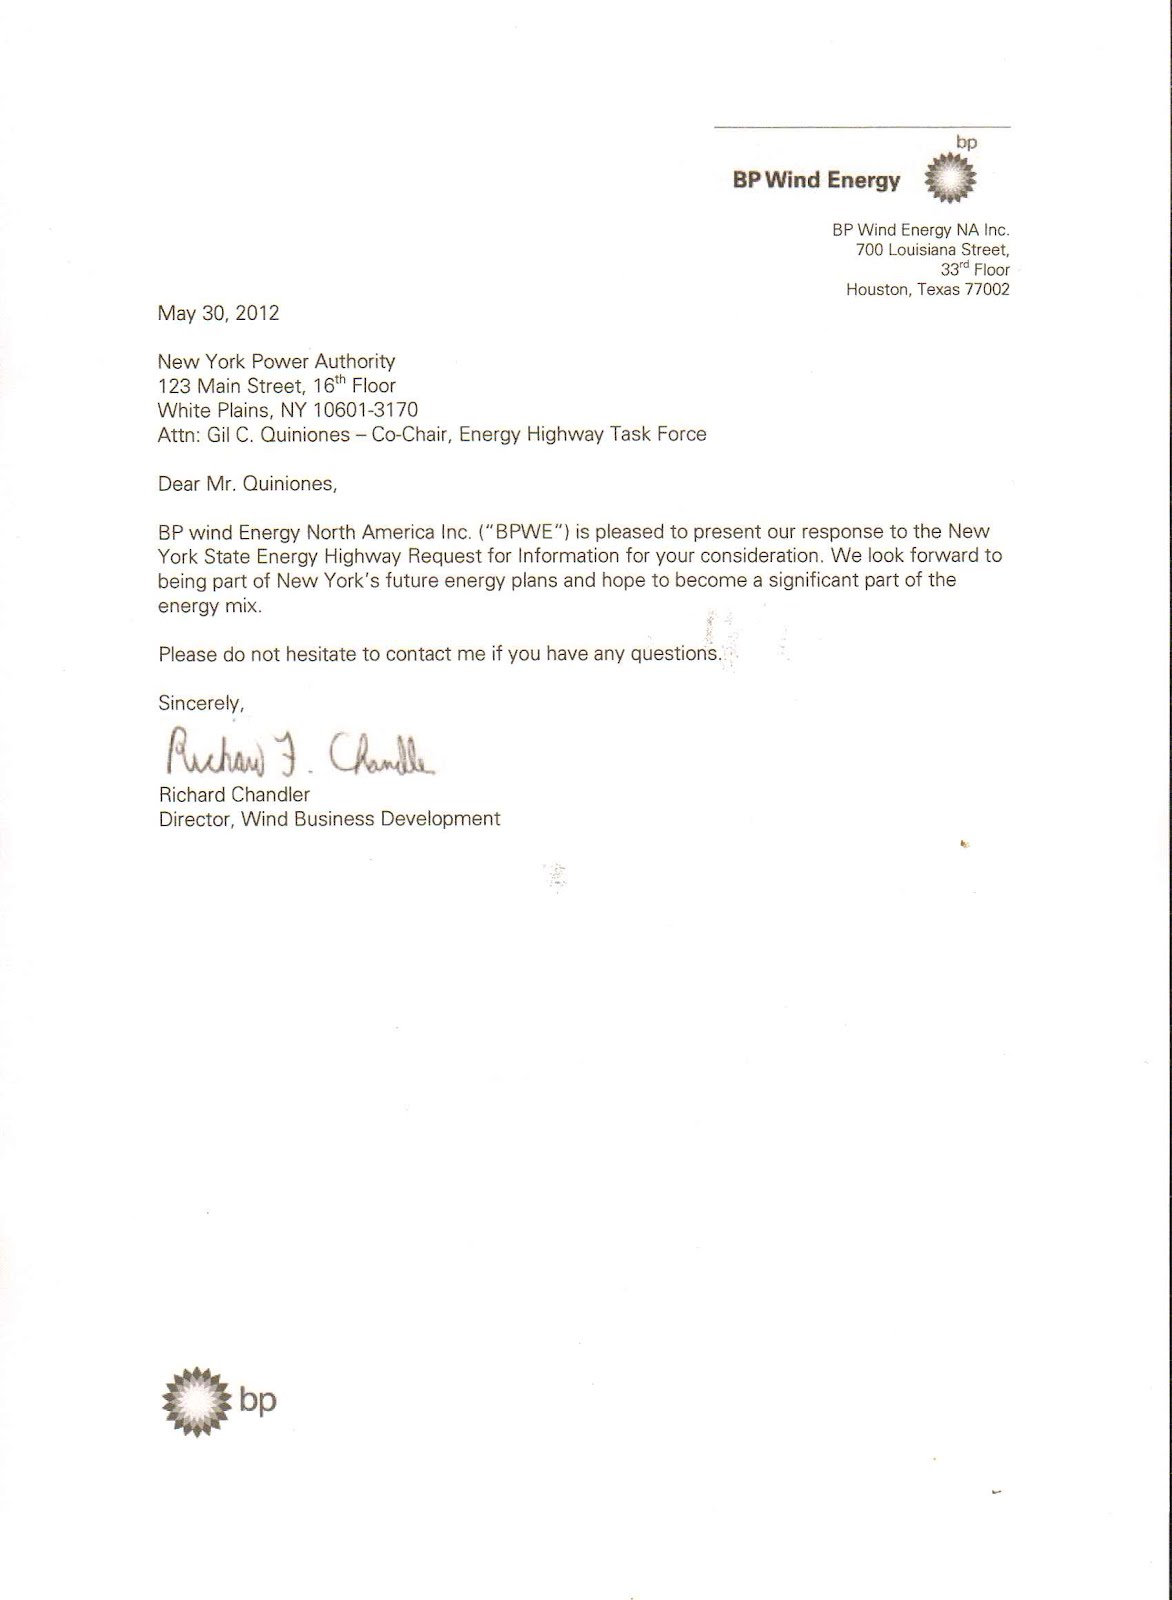 Doc12751650 How to Write a Business Proposal Cover Letter – How to Write a Business Proposal Cover Letter